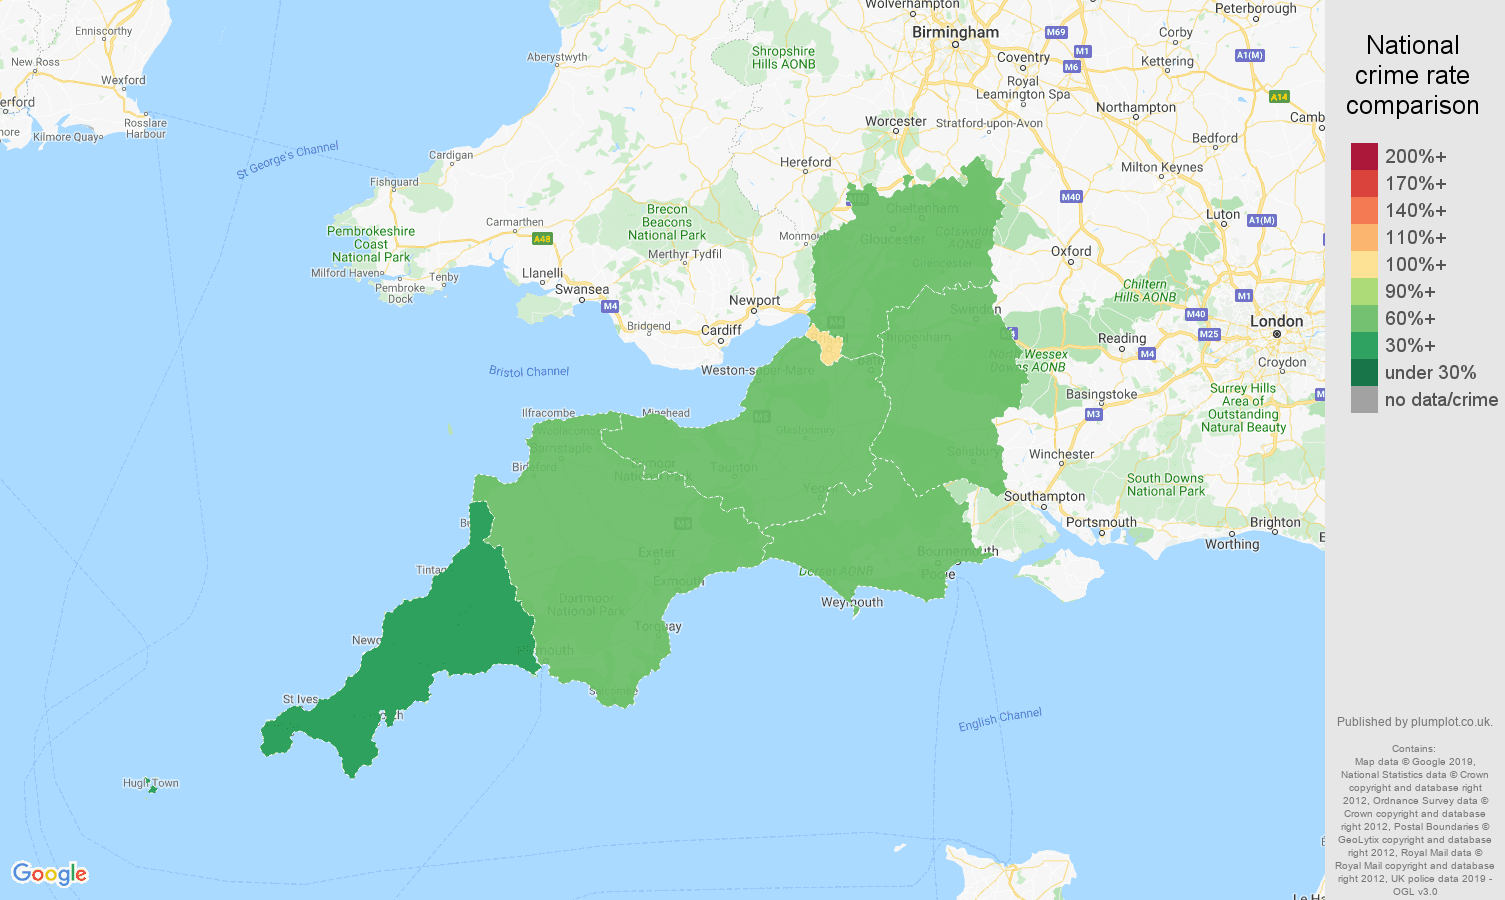 South West other theft crime rate comparison map